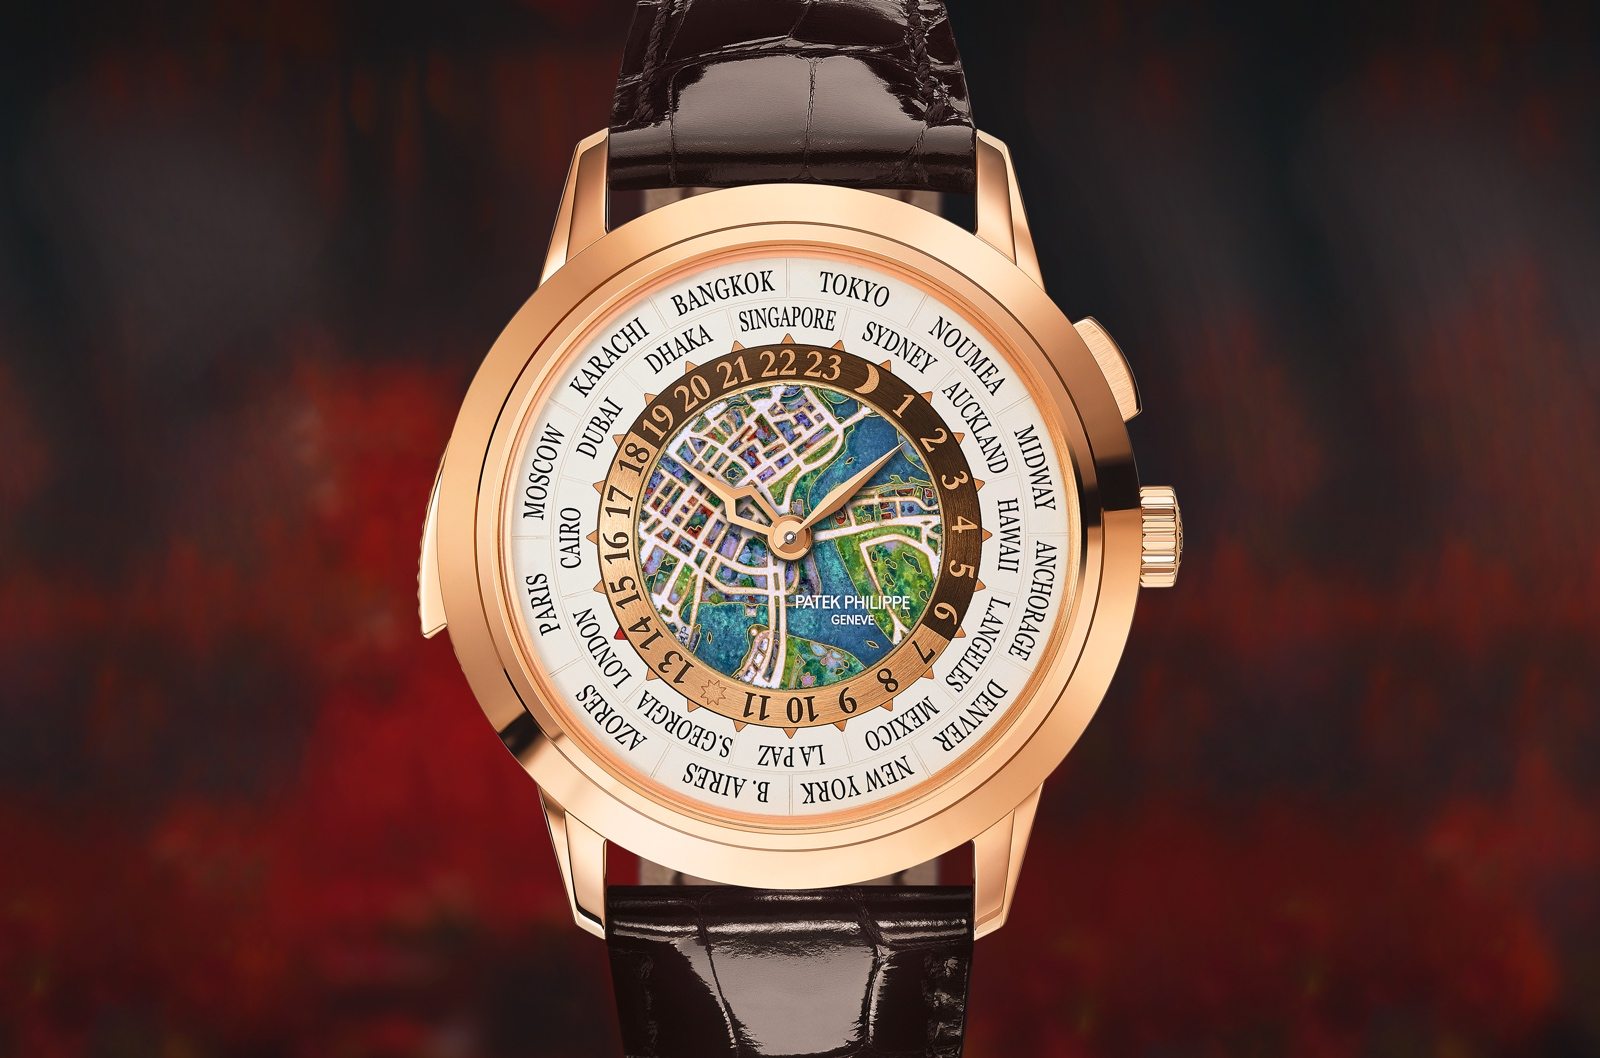 Patek Philippe Singapore 2019 Special Editions - 5531R-013